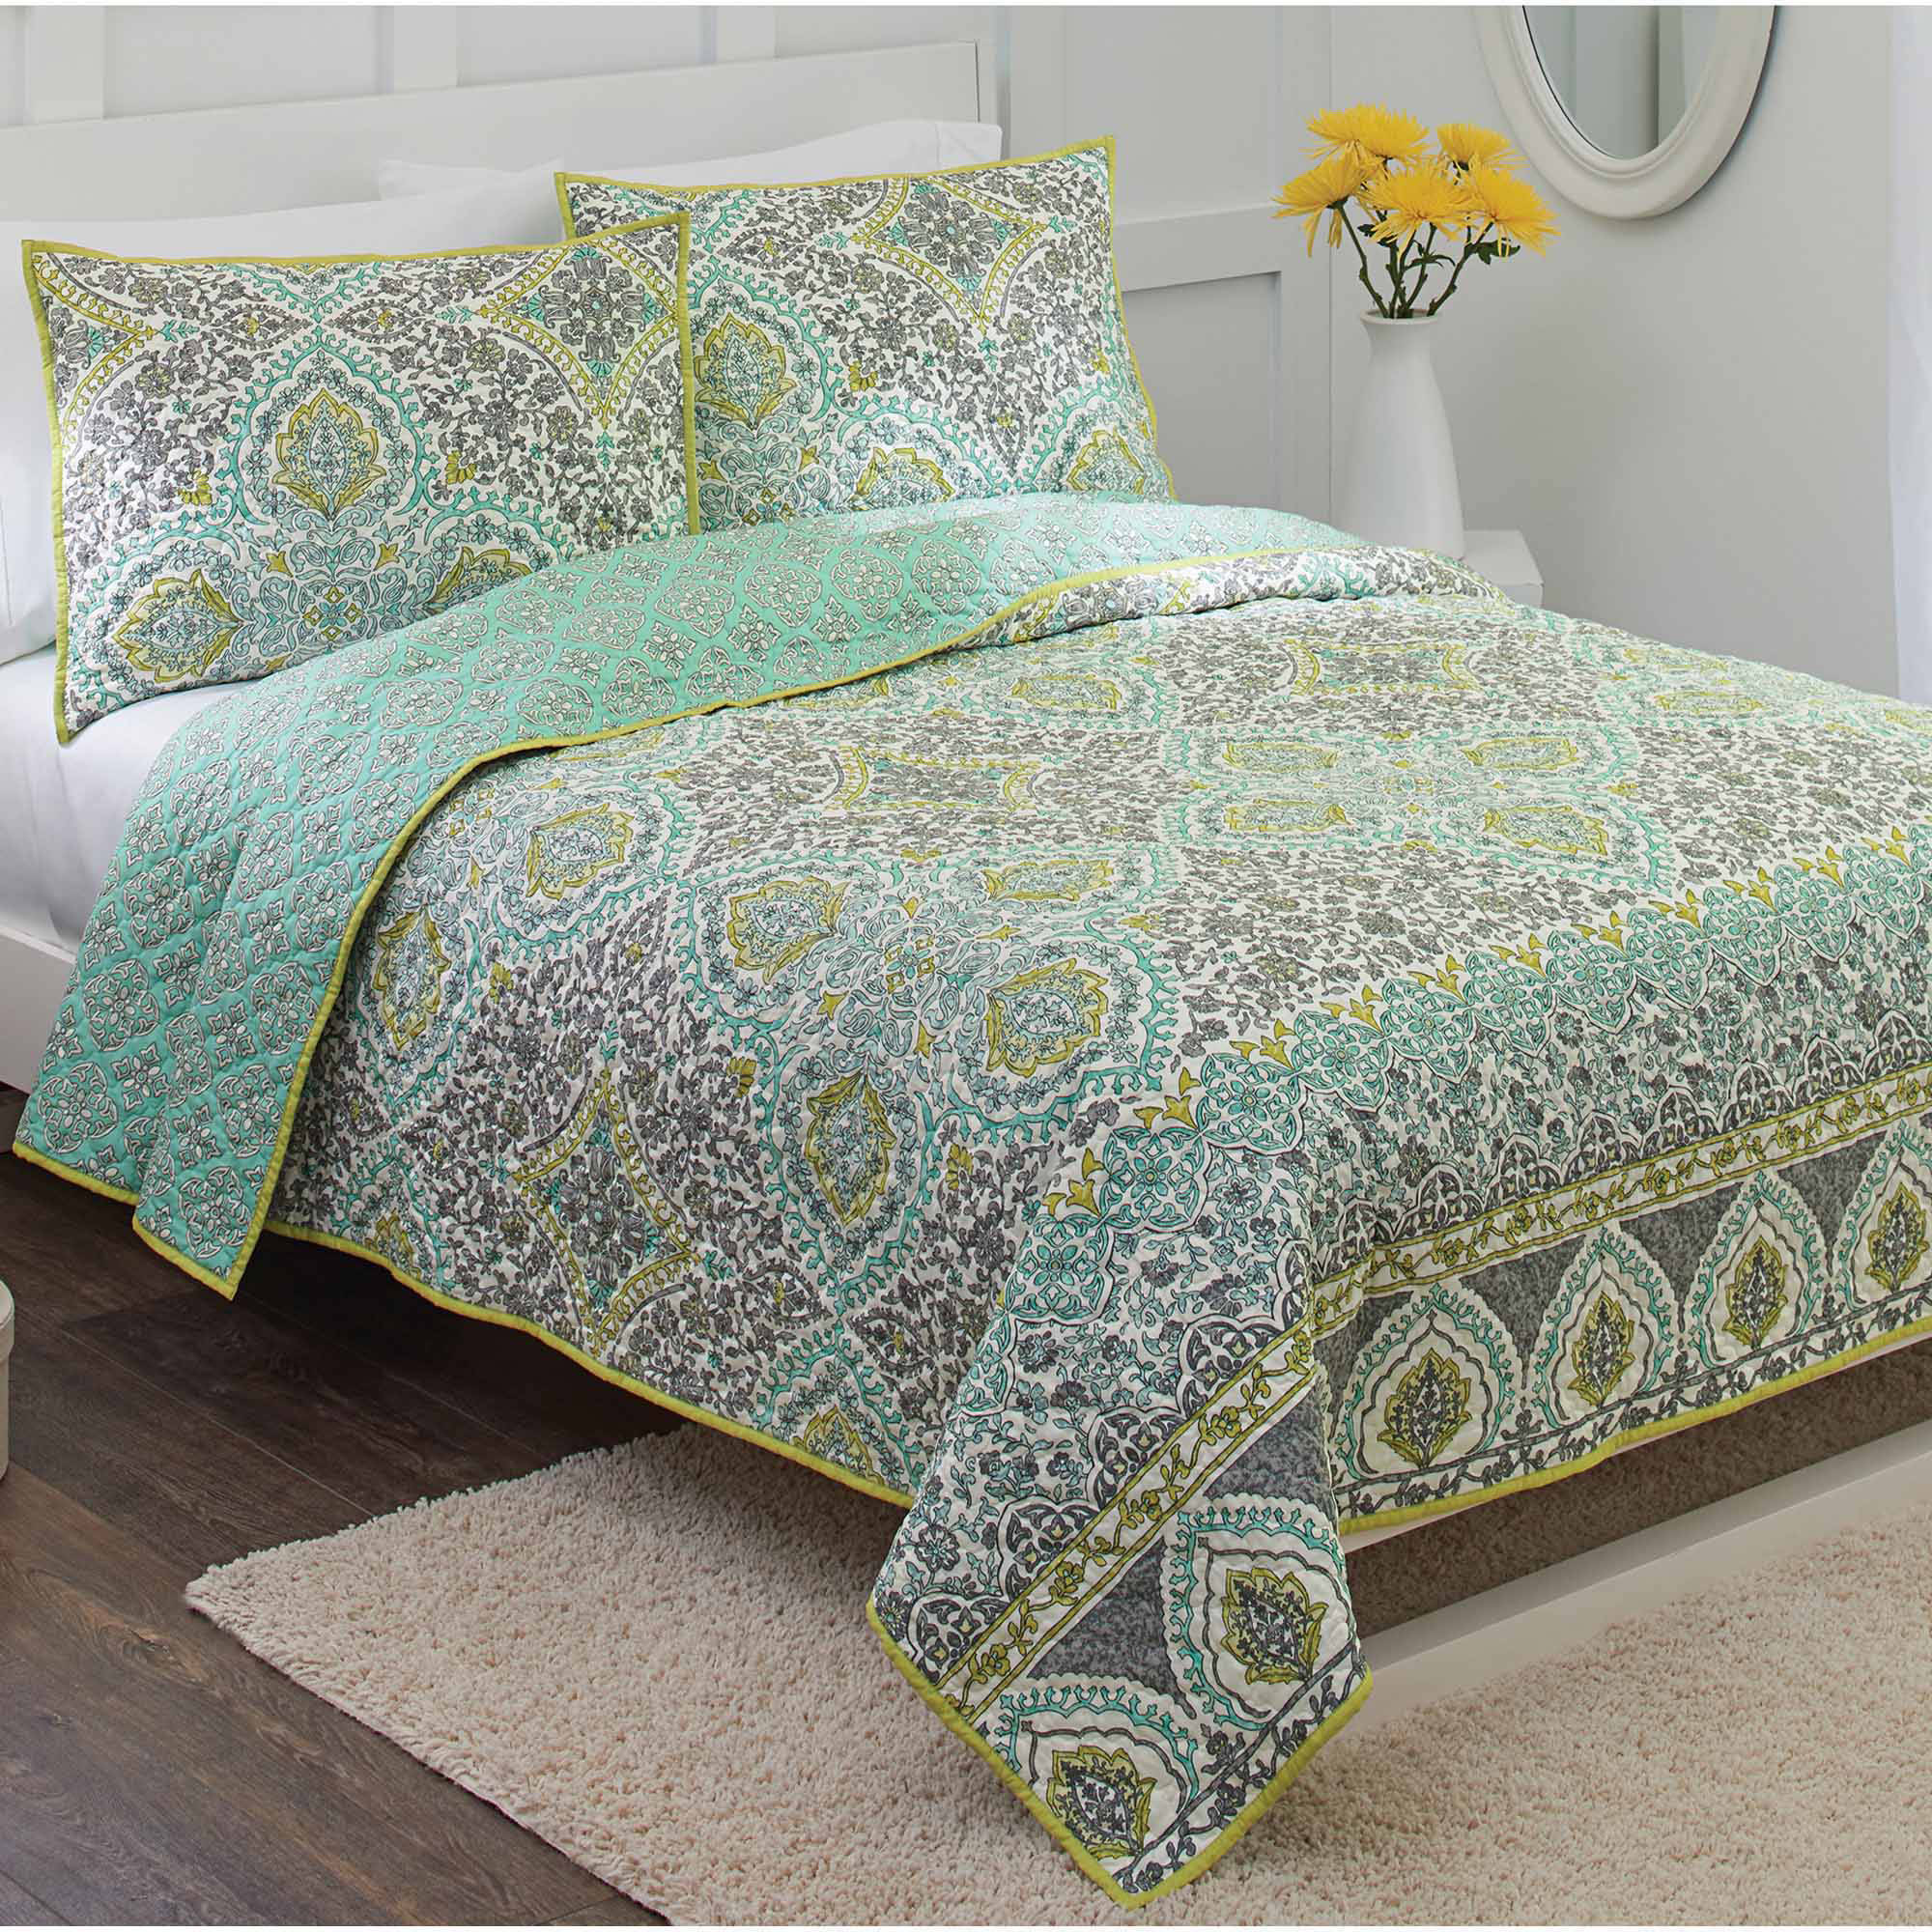 better ip piece homes gardens com walmart bedding sets quilt and comforter set watercolor floral